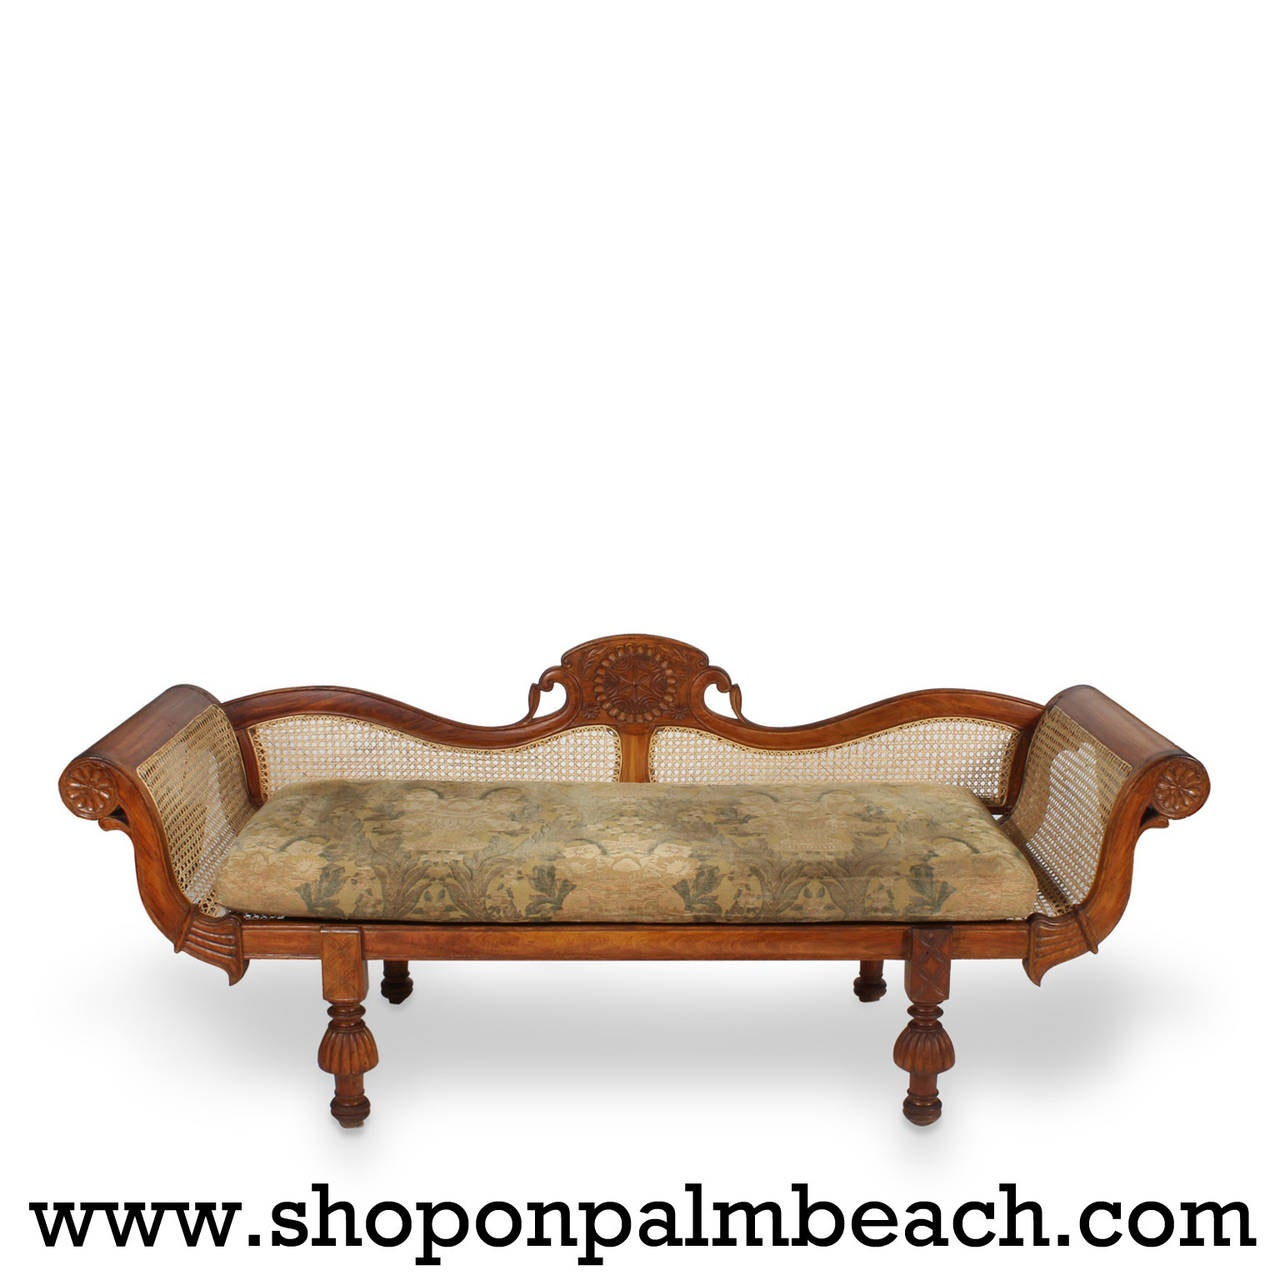 19th Century Tropical Hardwood Caned Rolled-Arm Sofa In Excellent Condition For Sale In Palm Beach, FL